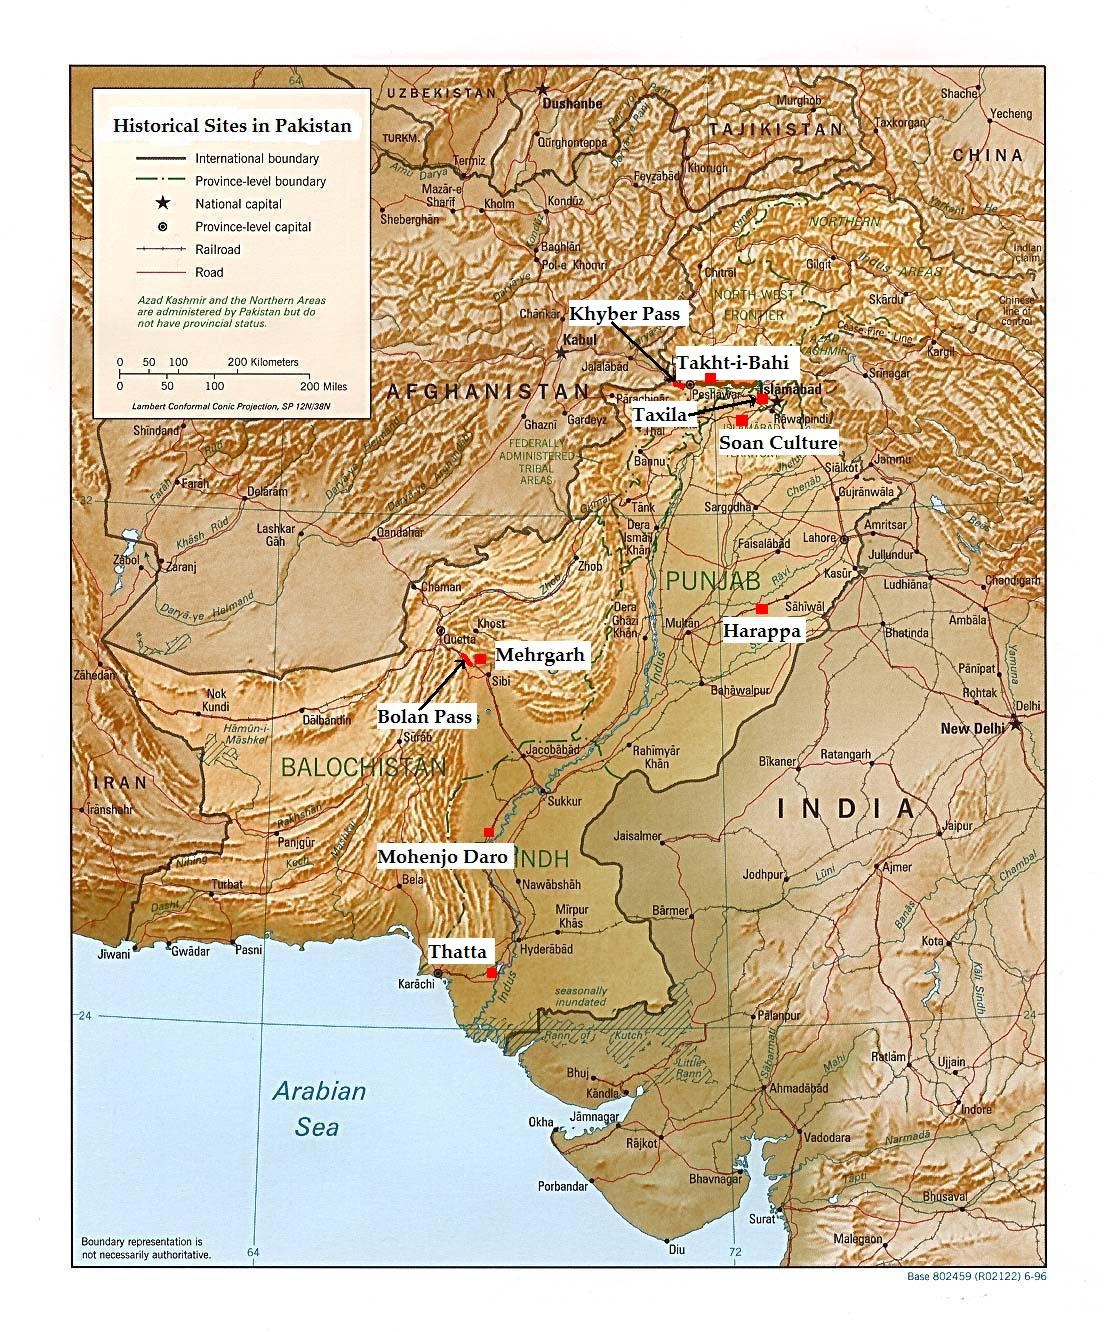 Indus vally civilisation, Indus people, Harrapa civilisation